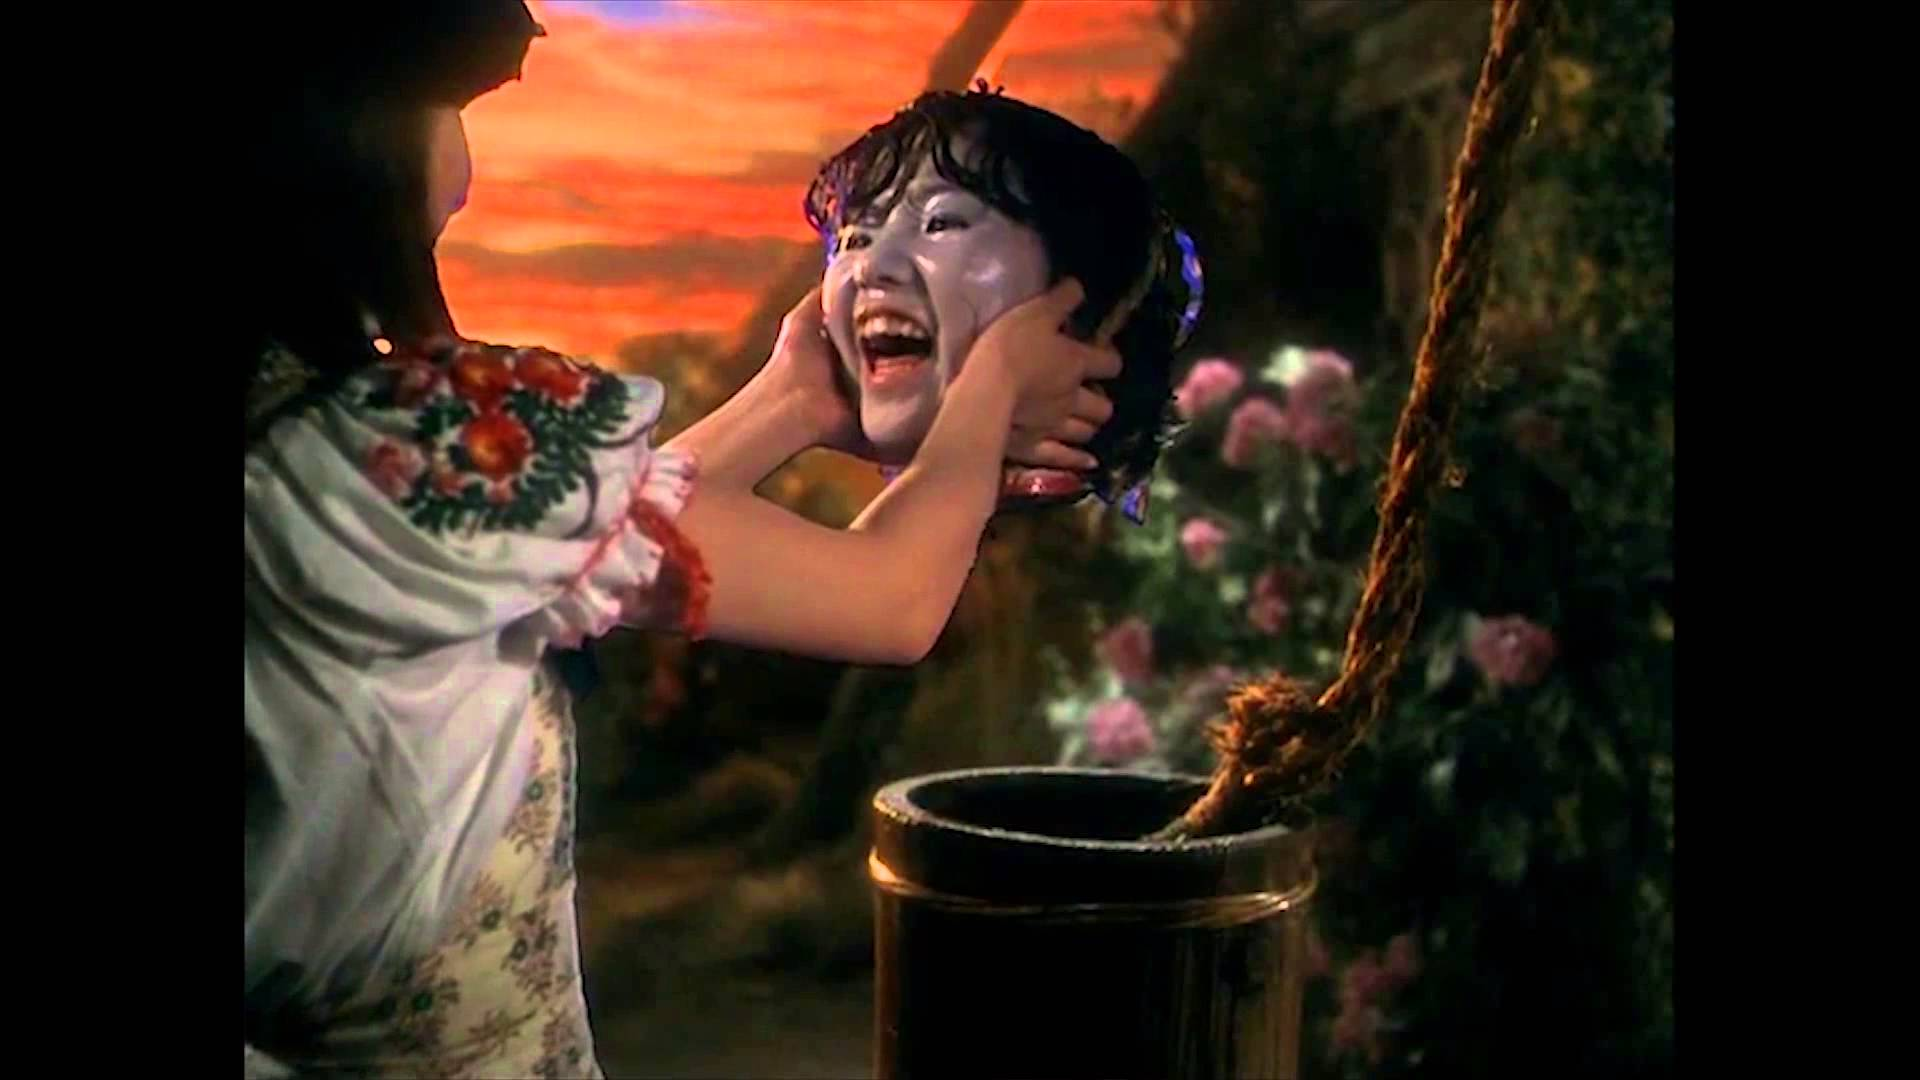 This is a still from Hausu.